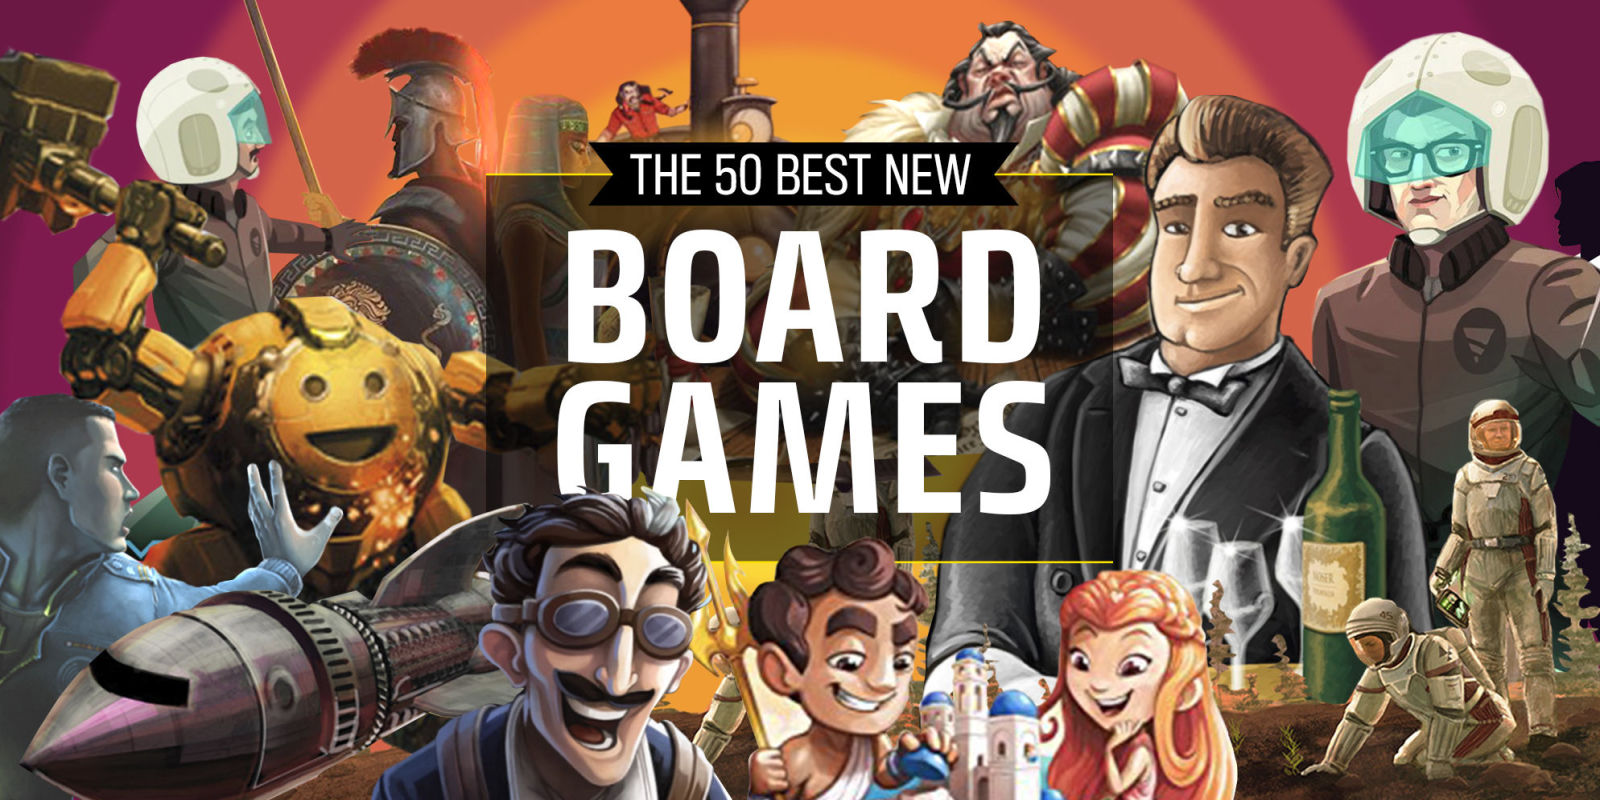 65 Best Board Games for Adults (2020) | Heavy.com